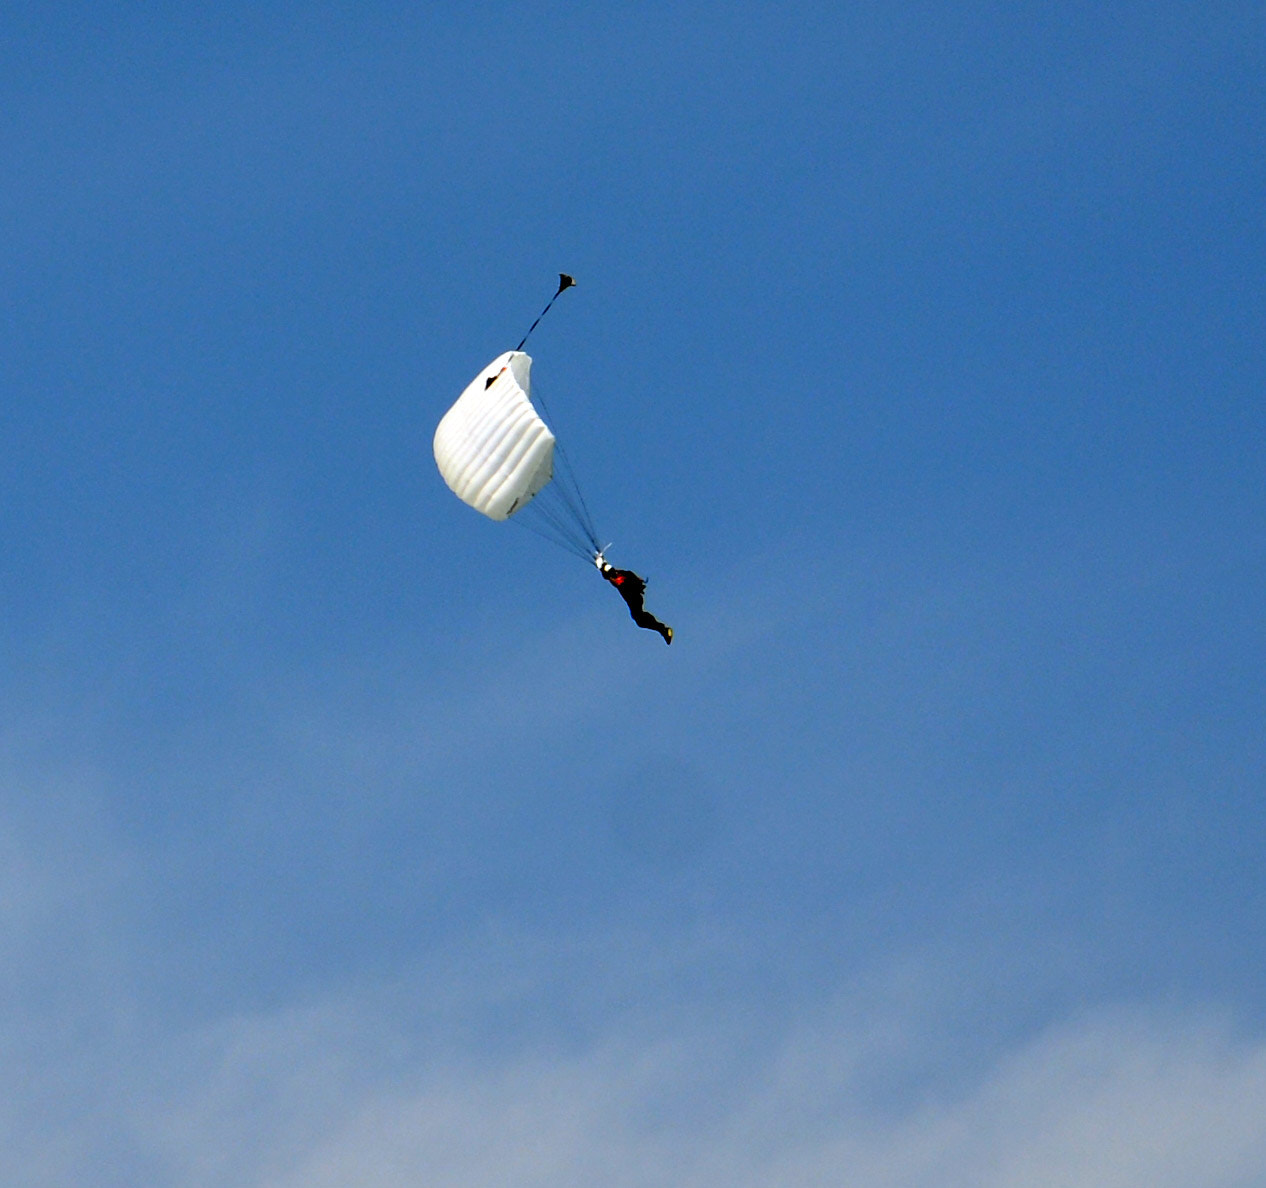 Photograph Parachute by lizfortie on 500px